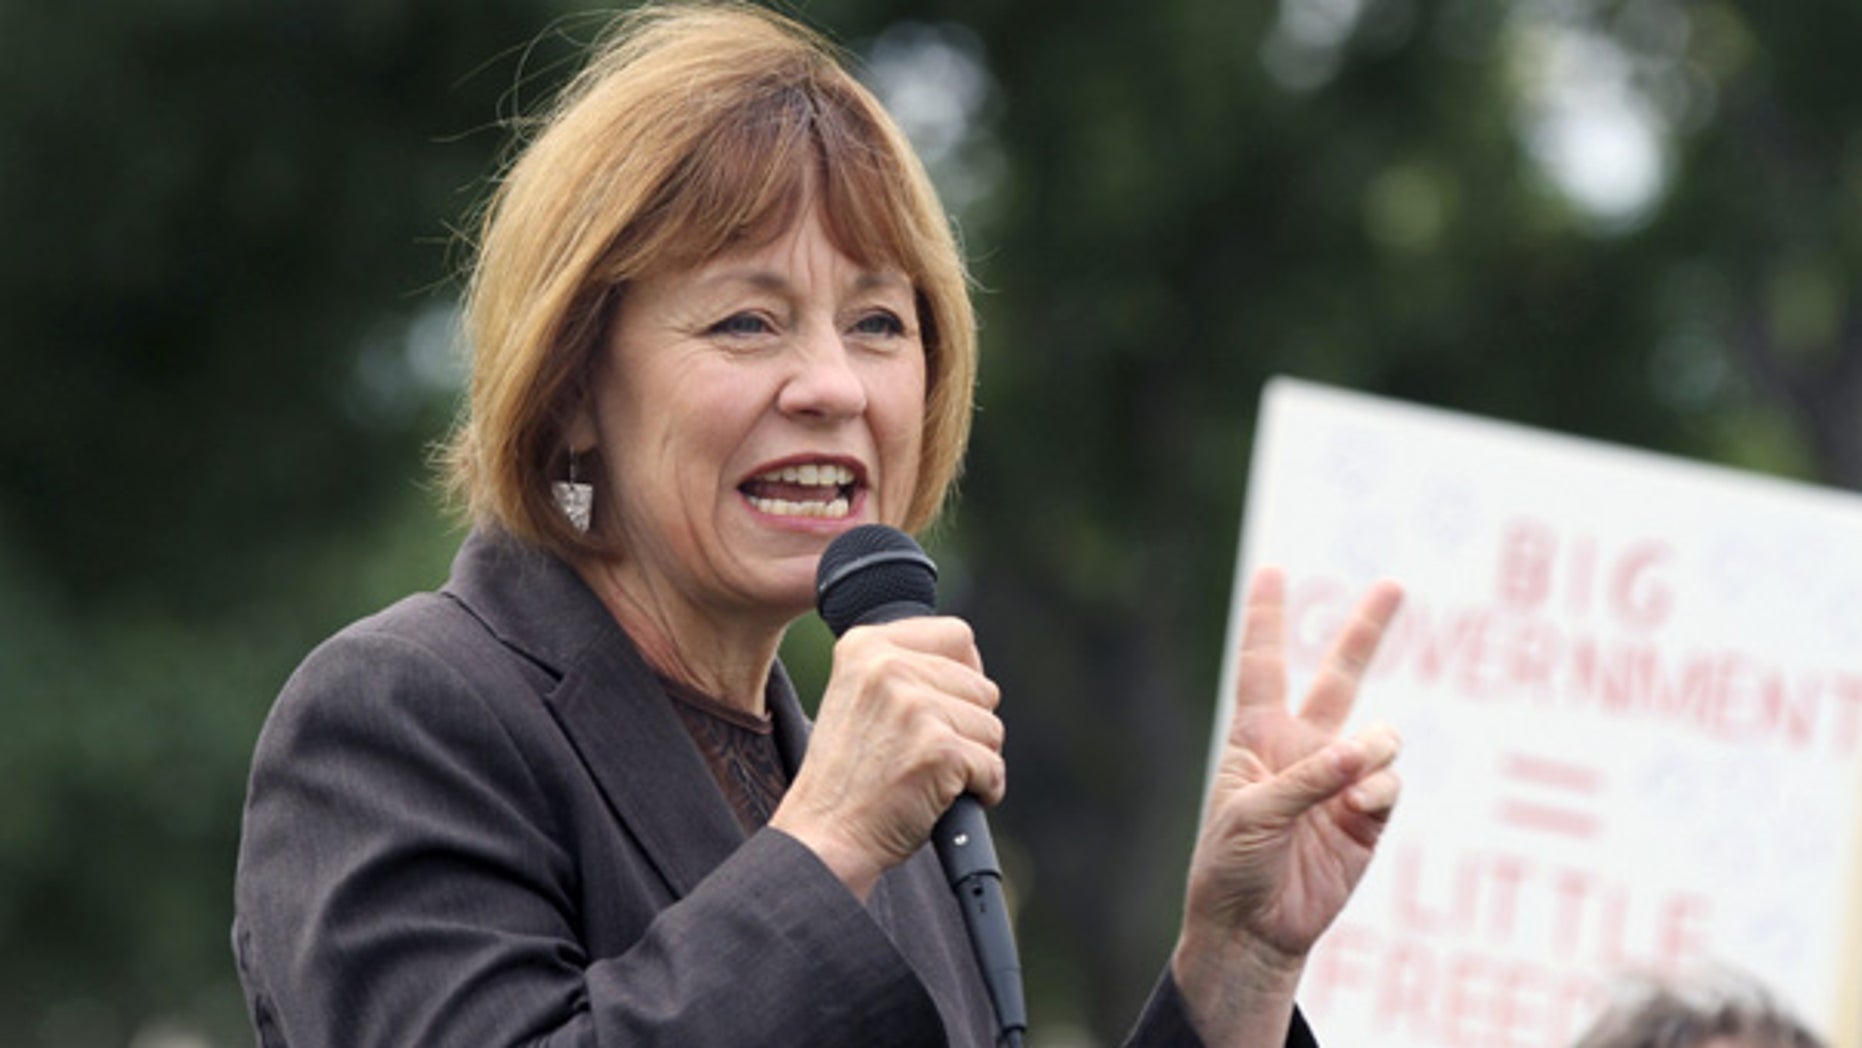 Oct. 11:  Nevada GOP Senate candidate Sharron Angle speaks at a rally in Carson City, Nev.